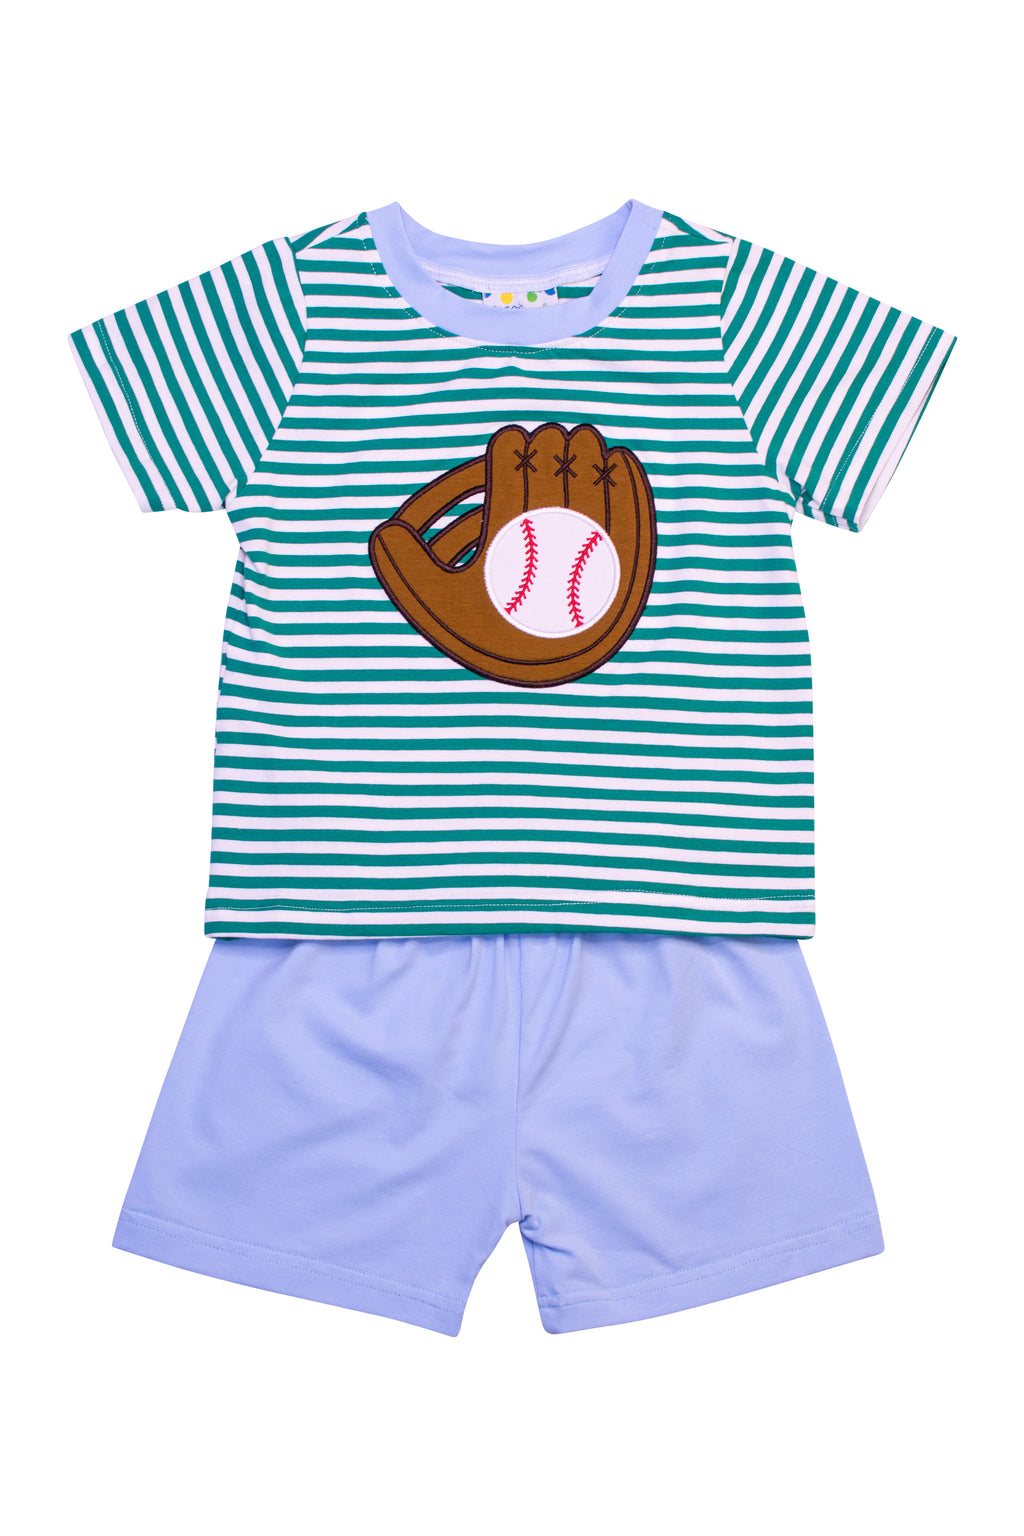 Boys Green/Blue Stripe Baseball Short Set